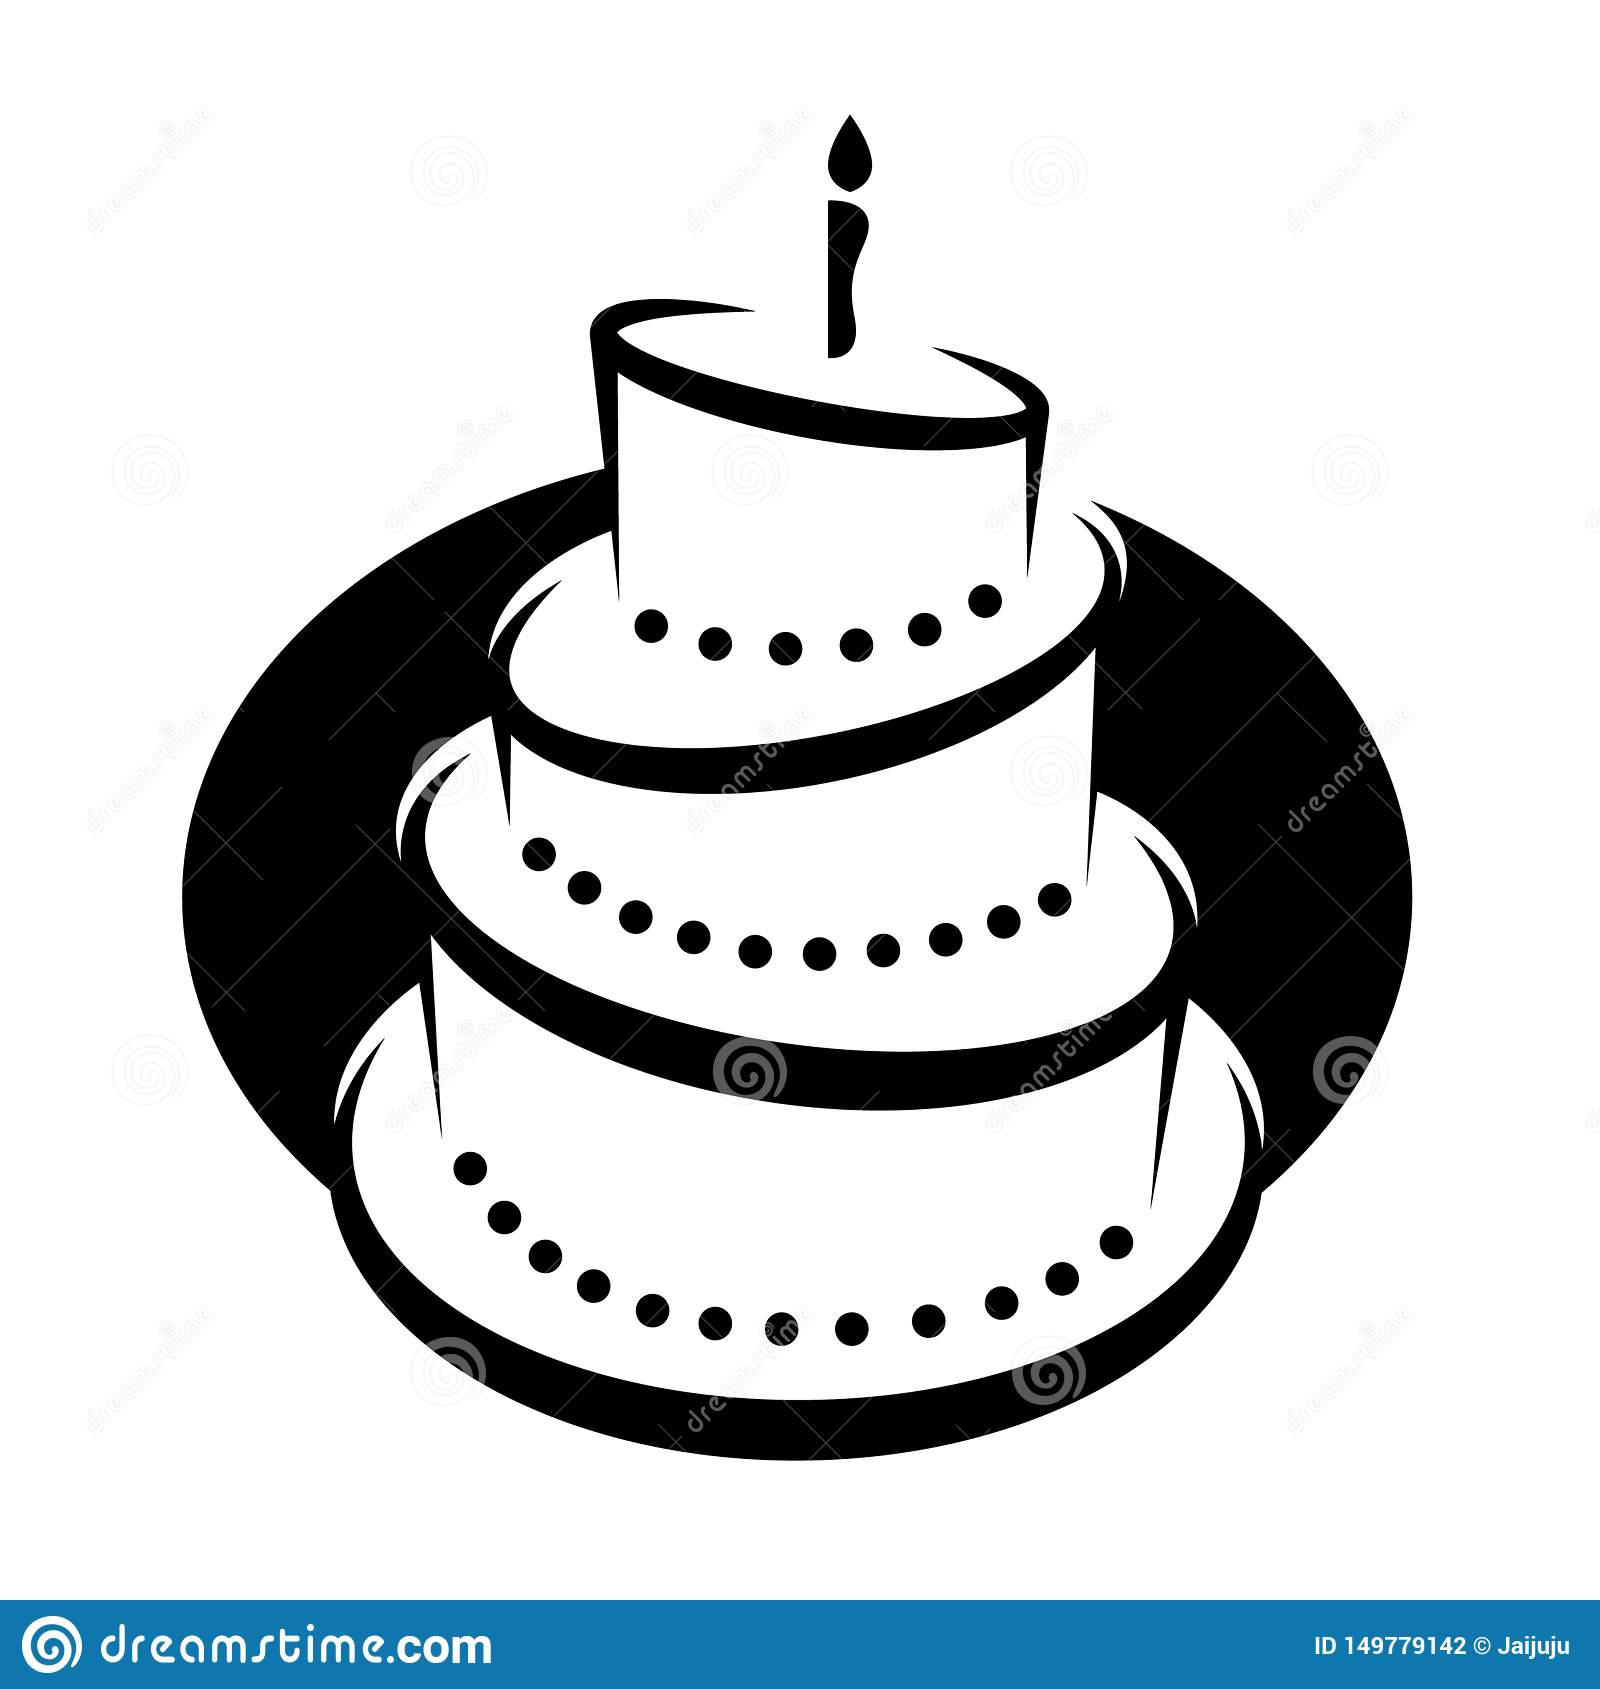 Clipart Illustration Of A Black And White Tiered Birthday Cake With Candles On Oval Vector Design Stock Vector Illustration Of Contour Bakery 149779142